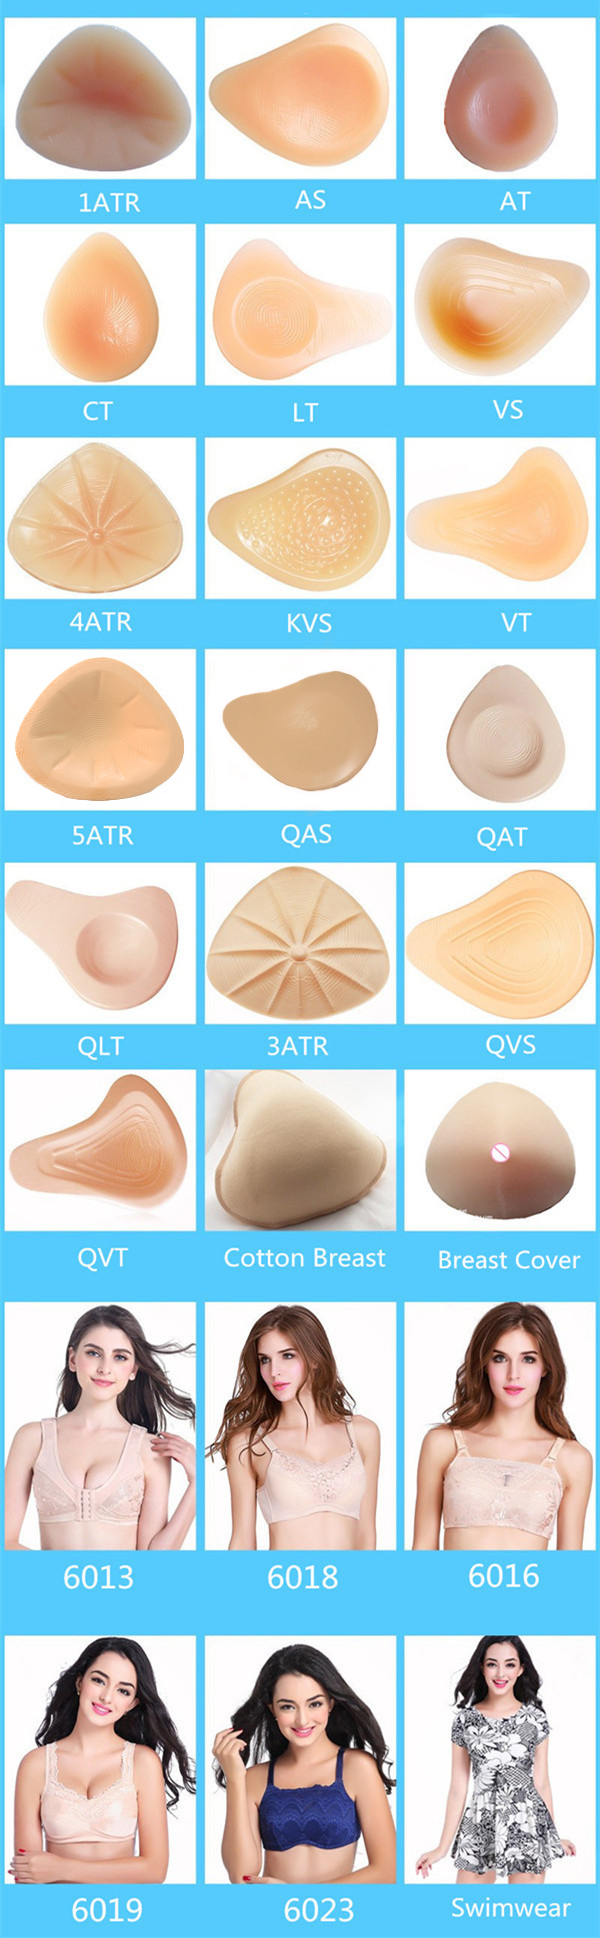 Mastectomy Silicone Artificial Breast Forms Beautiful Fake Rubber Boobs for Woman Sexy Boobs Best Partner Wholesale